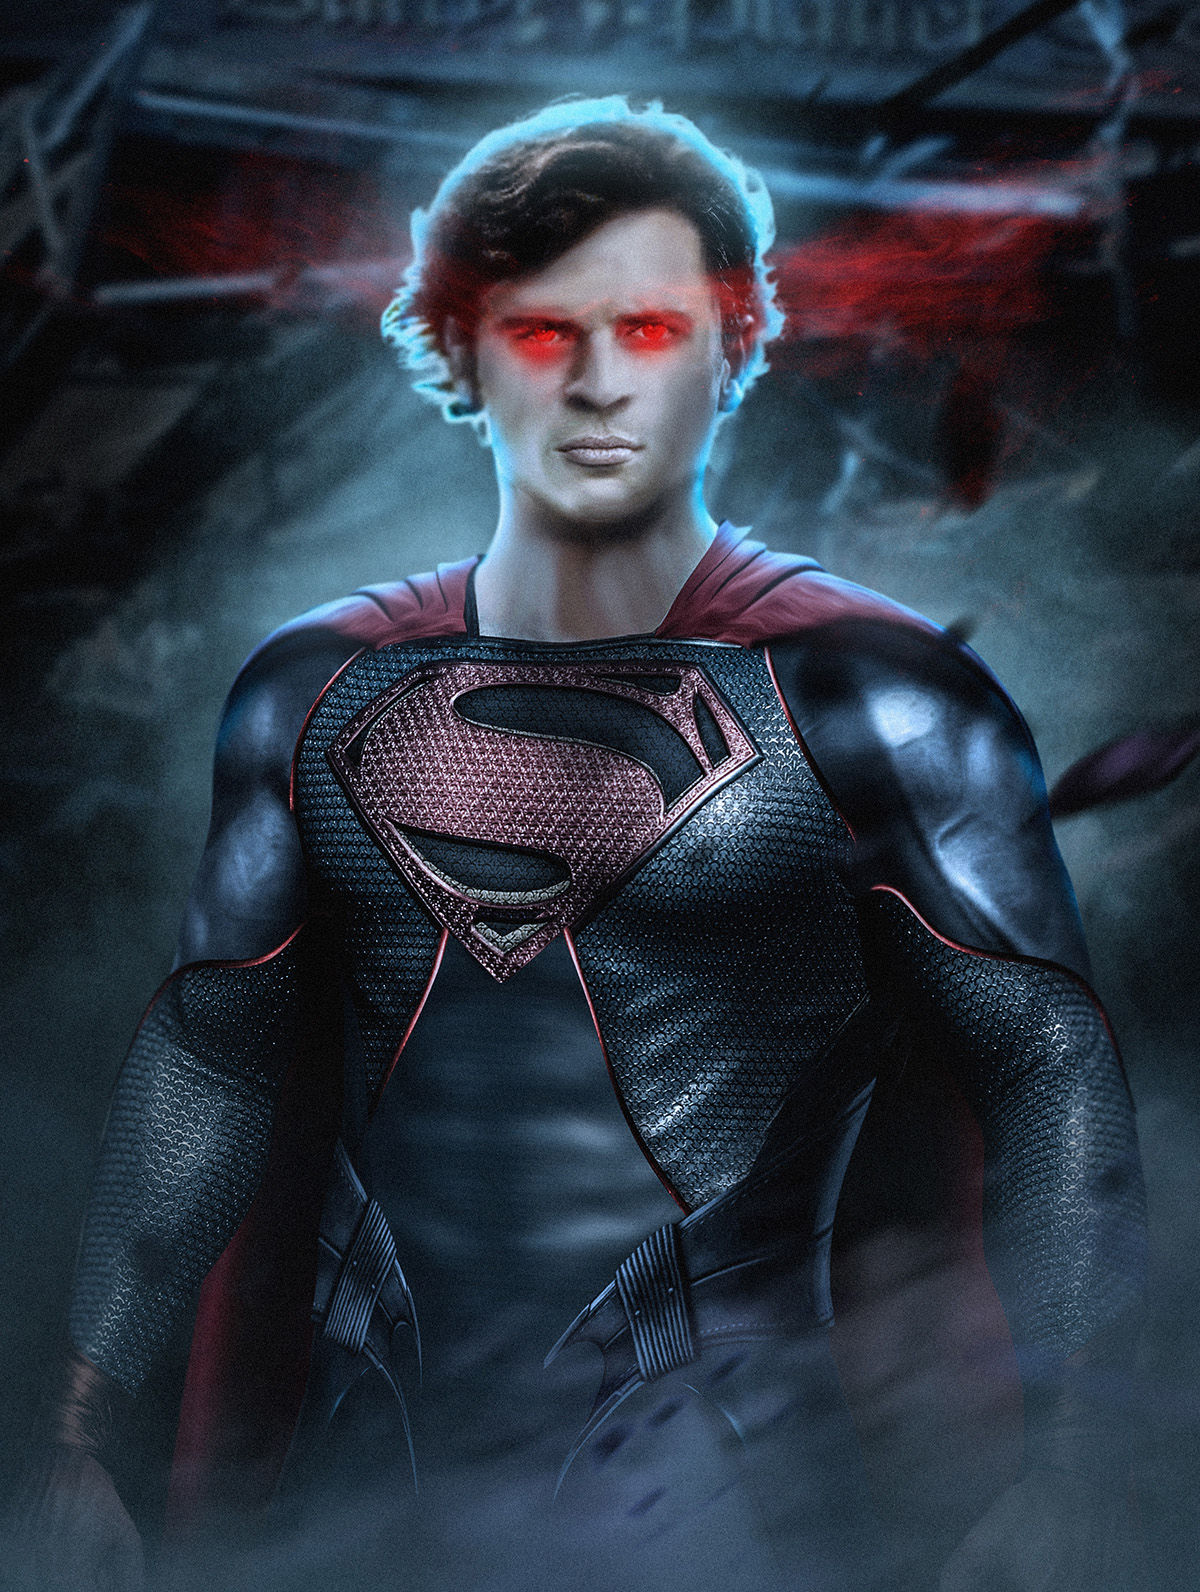 Tom welling as superman in justice league movie